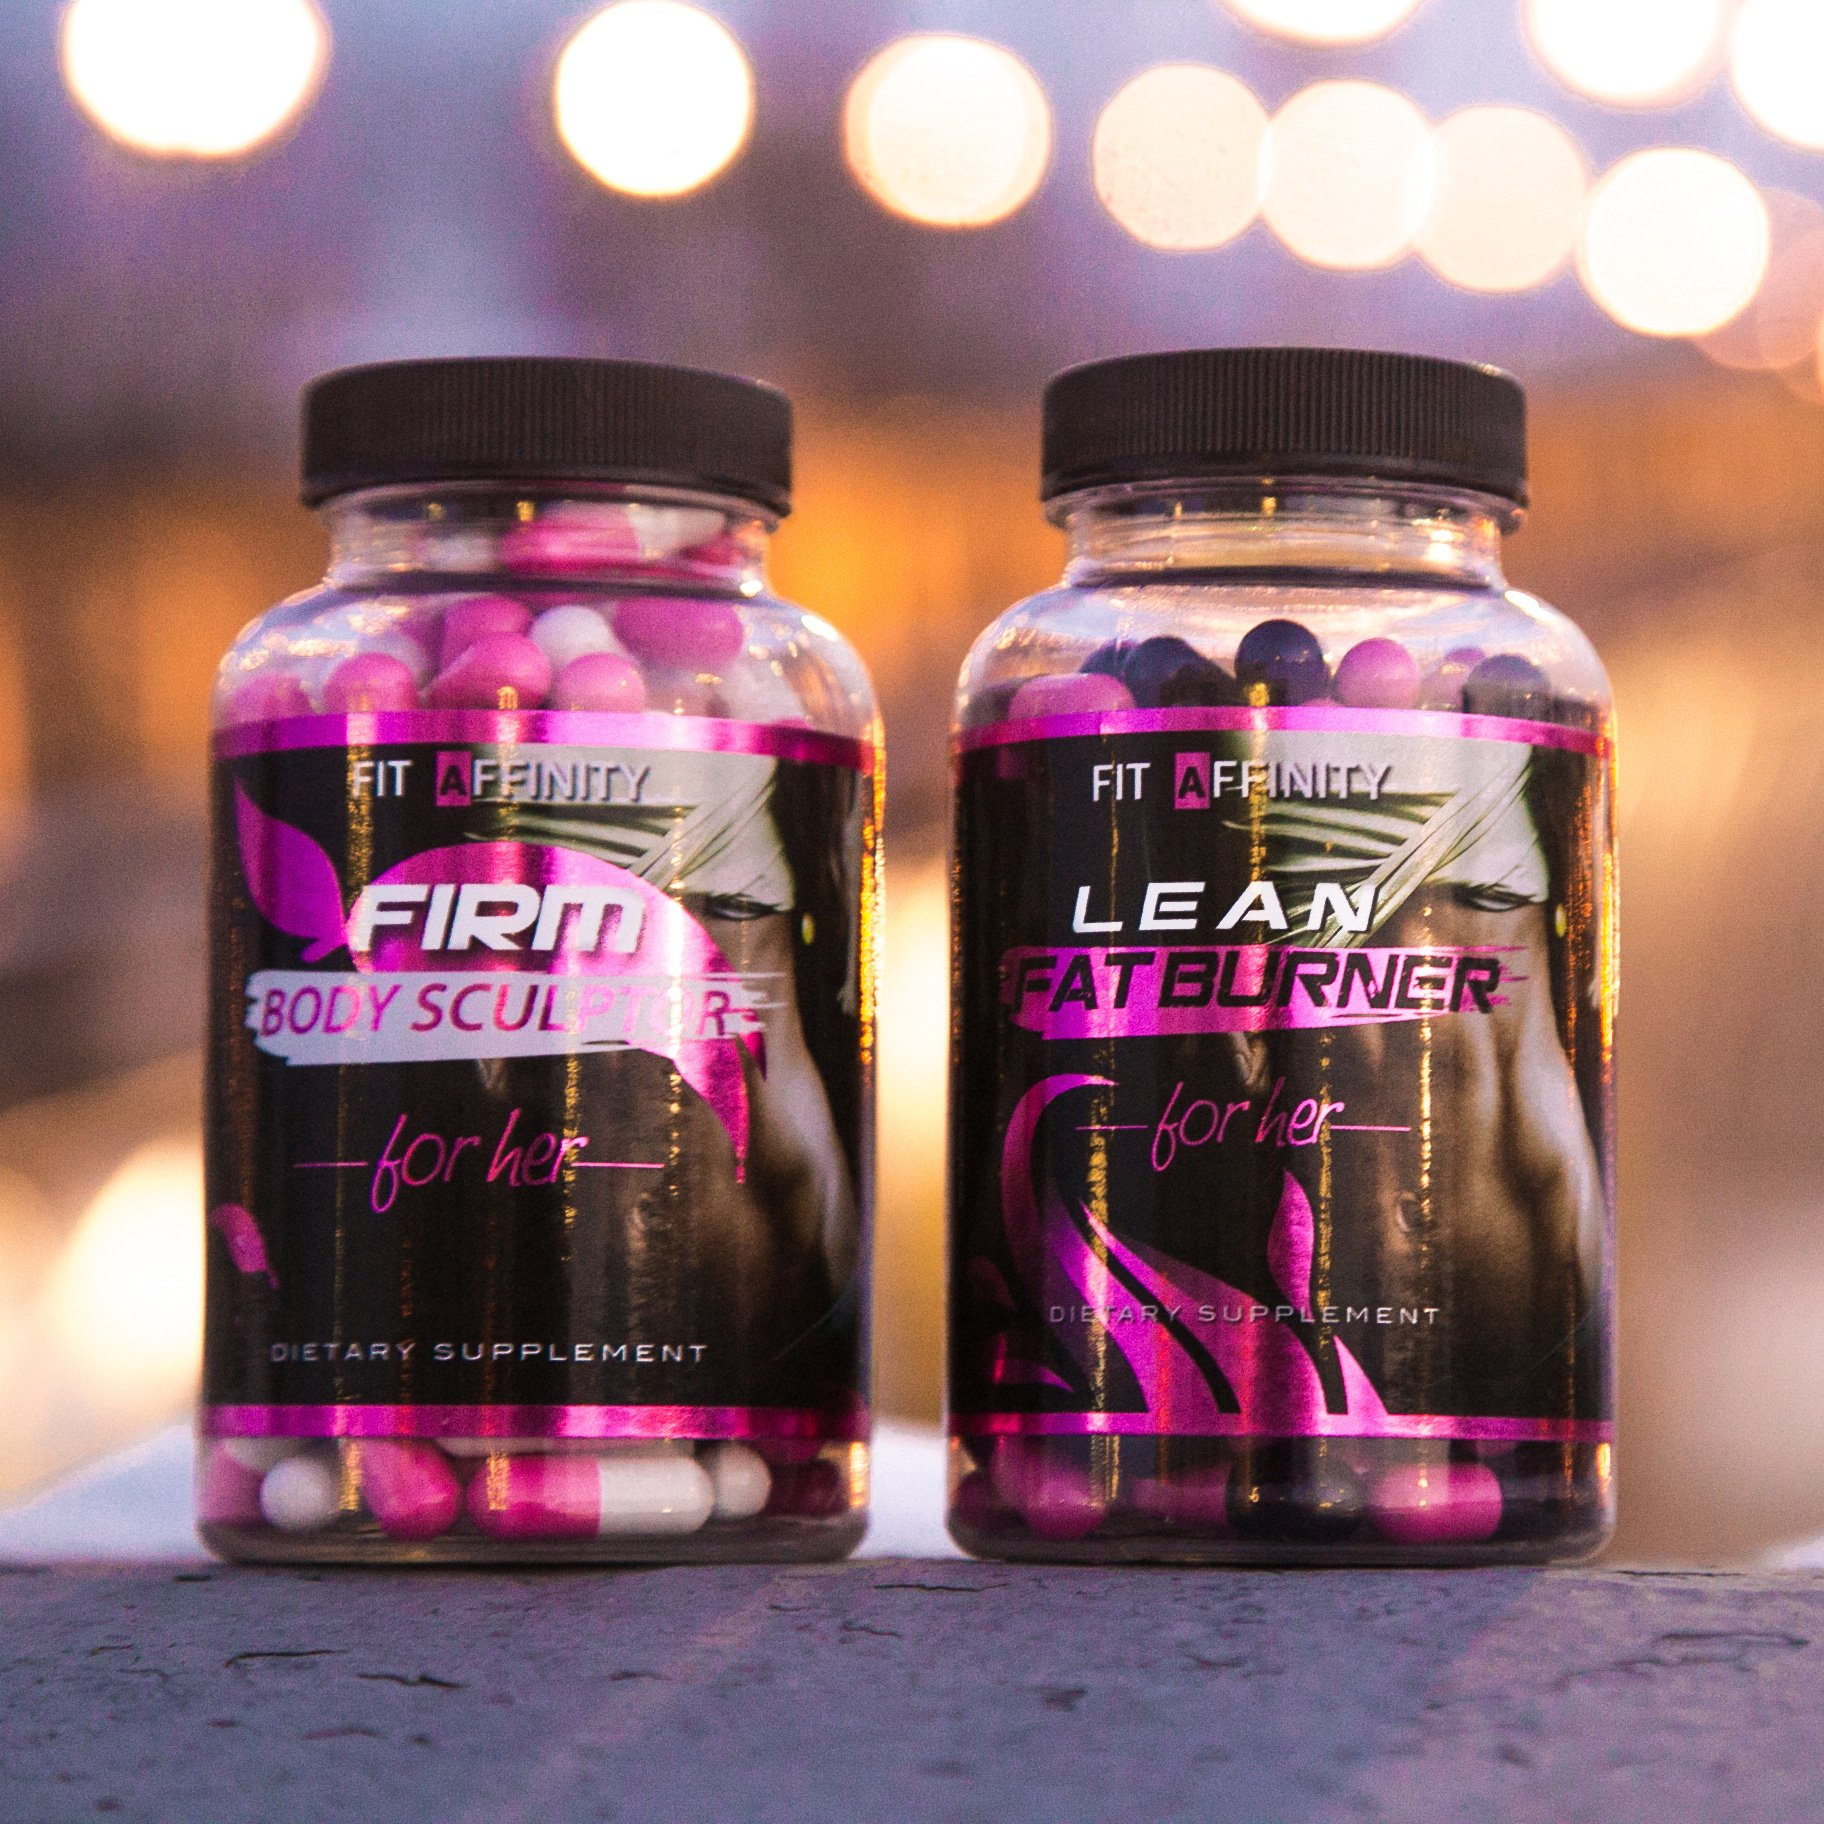 FIT AFFINITY Lean & Sculpted Bundle - Fat Burner for Women • Best All Natural Weight Loss Pills - Thermogenic Fat Loss Supplement & Appetite Suppressant Diet Pills - 90 Capsules (Each Bottle) by Fit Affinity (Image #7)